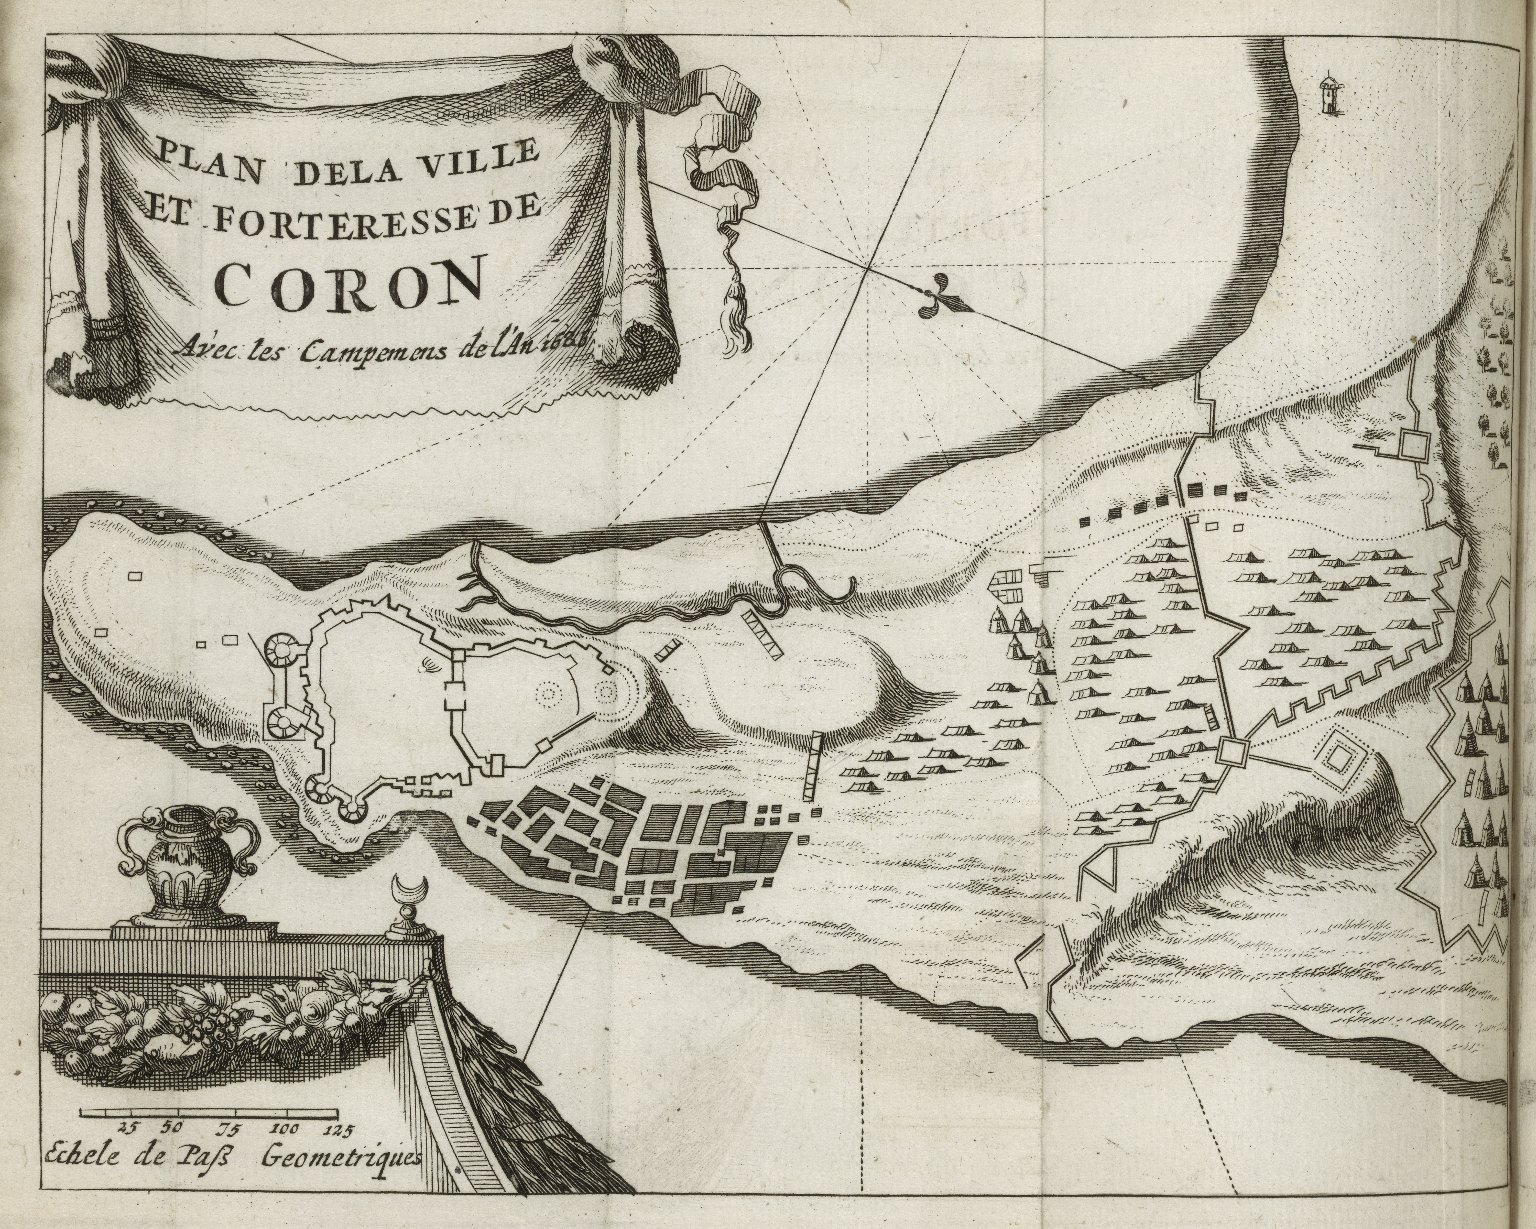 [Memorie istoriografiche del regno di Morea e Negroponte. English]An historical and geographical account of the Morea, Negropont, and the maritime places…